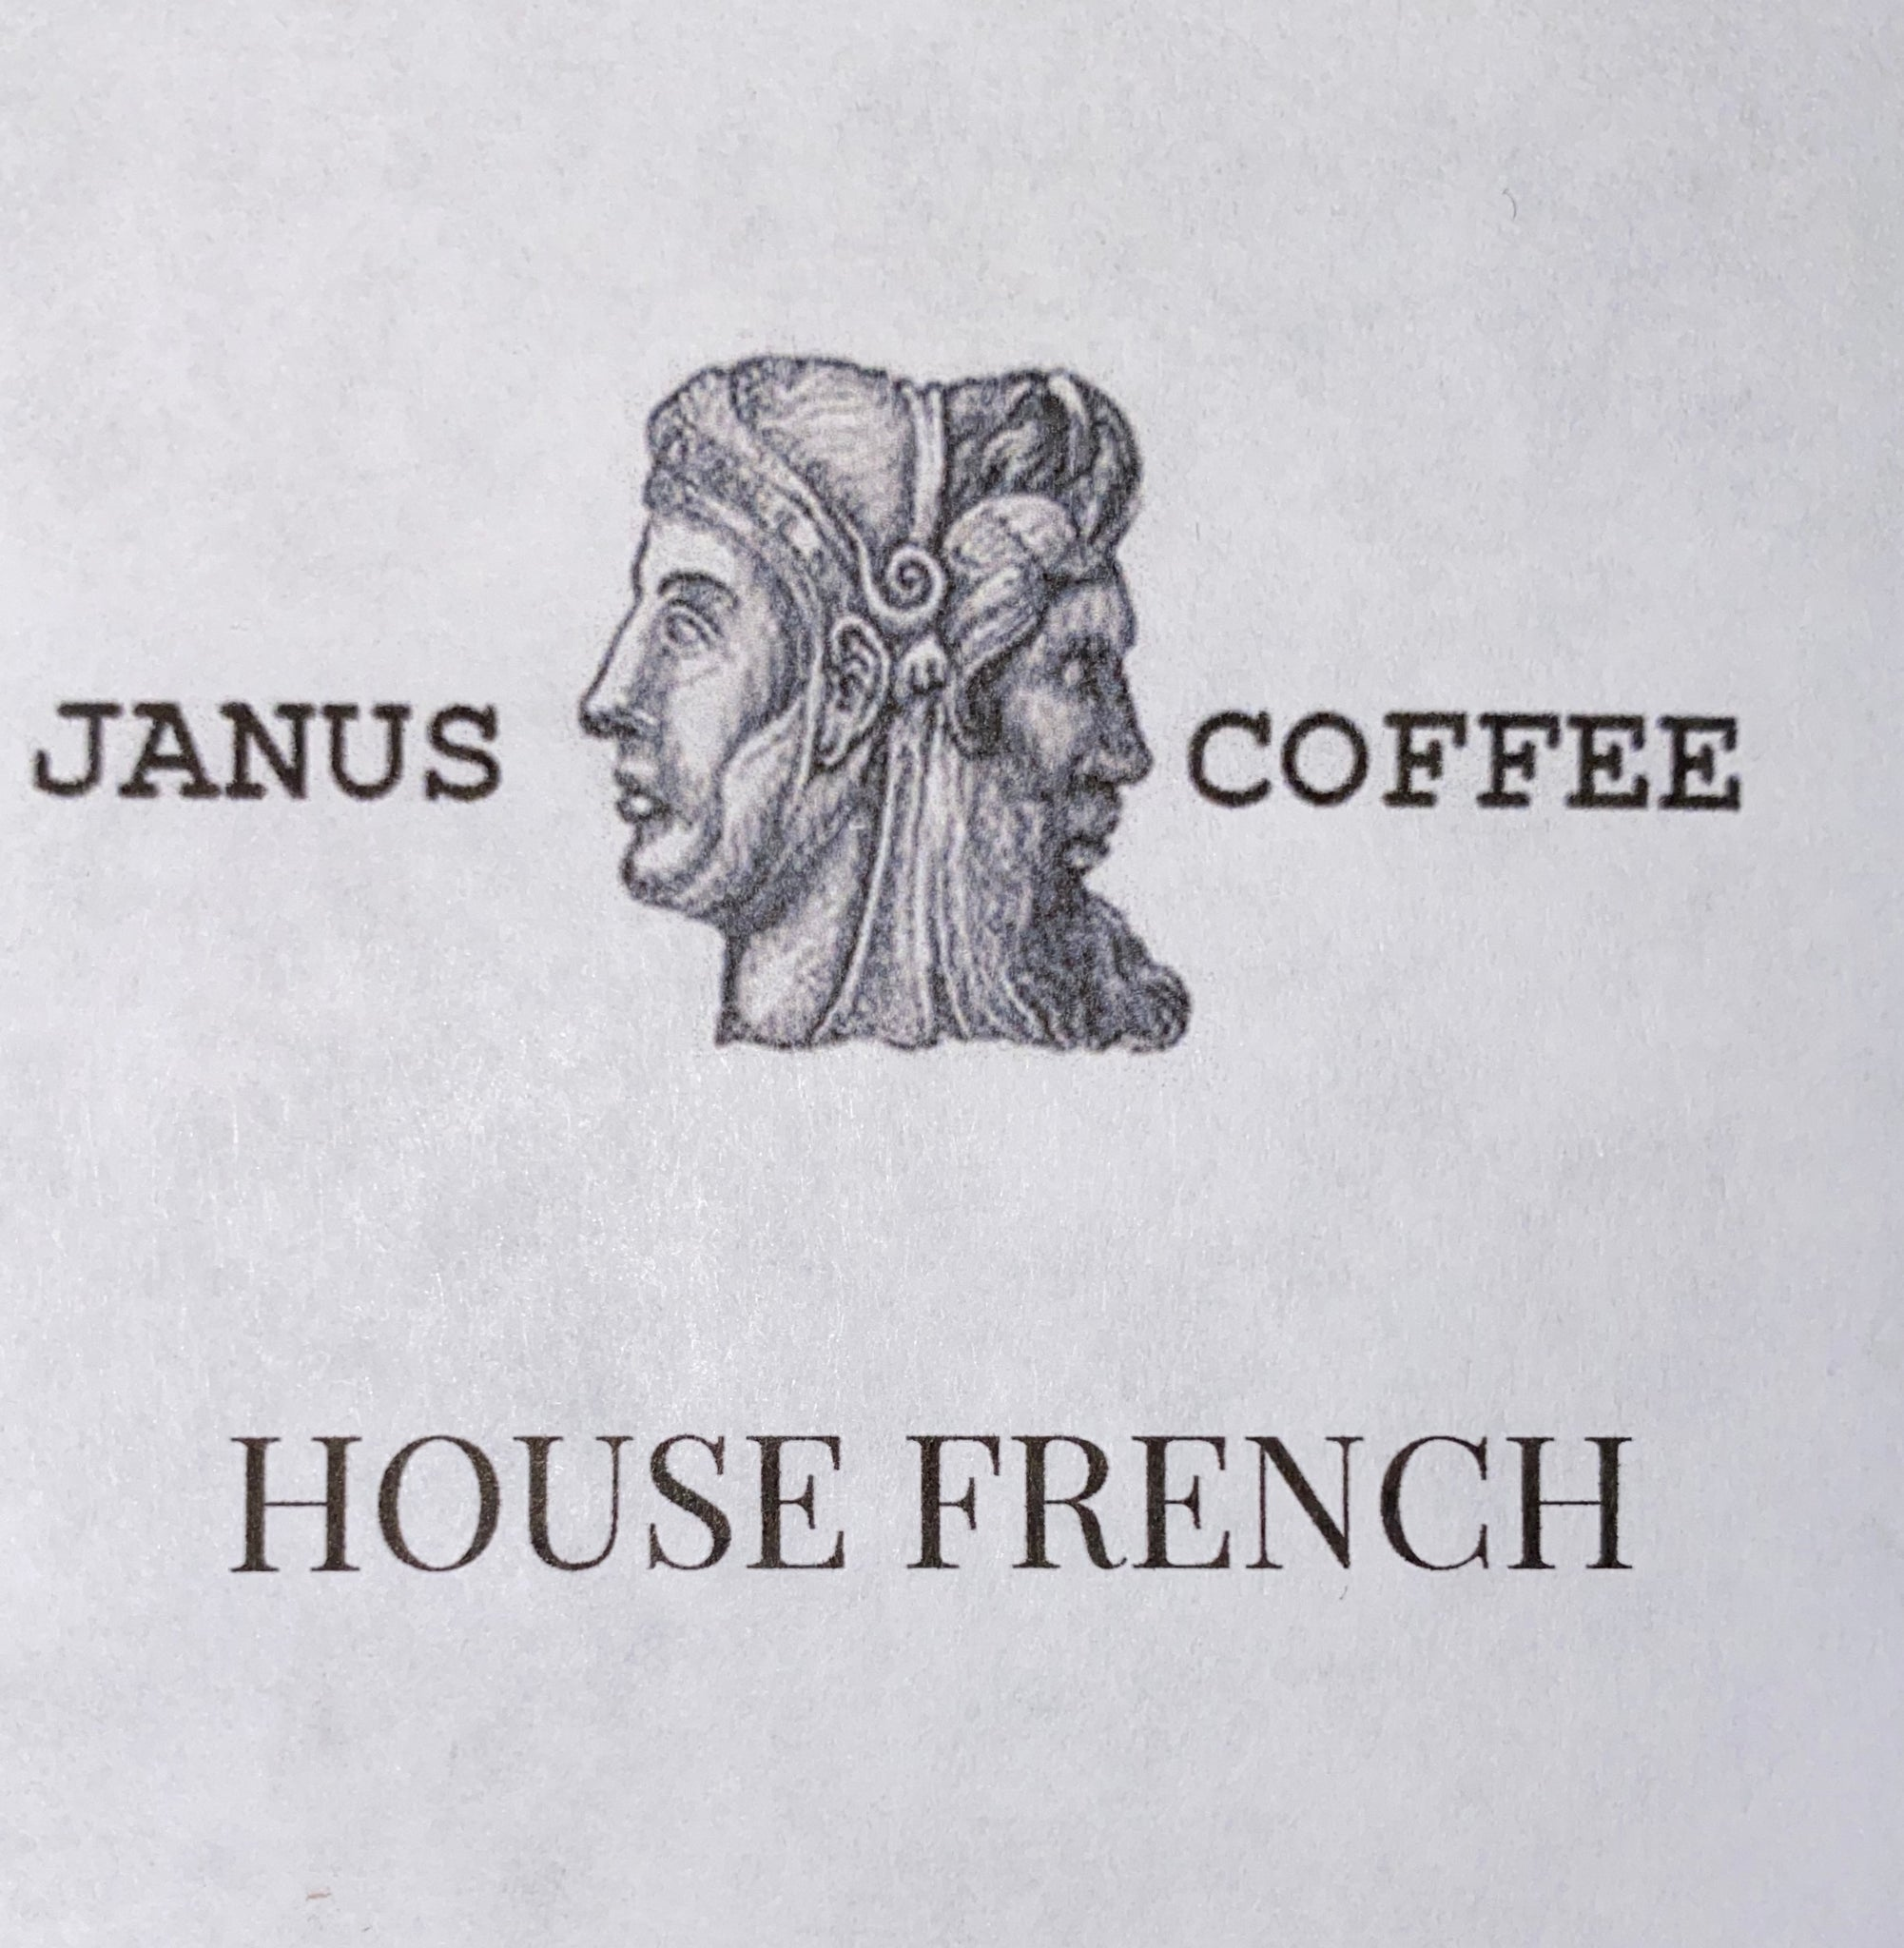 Janus Coffee House French